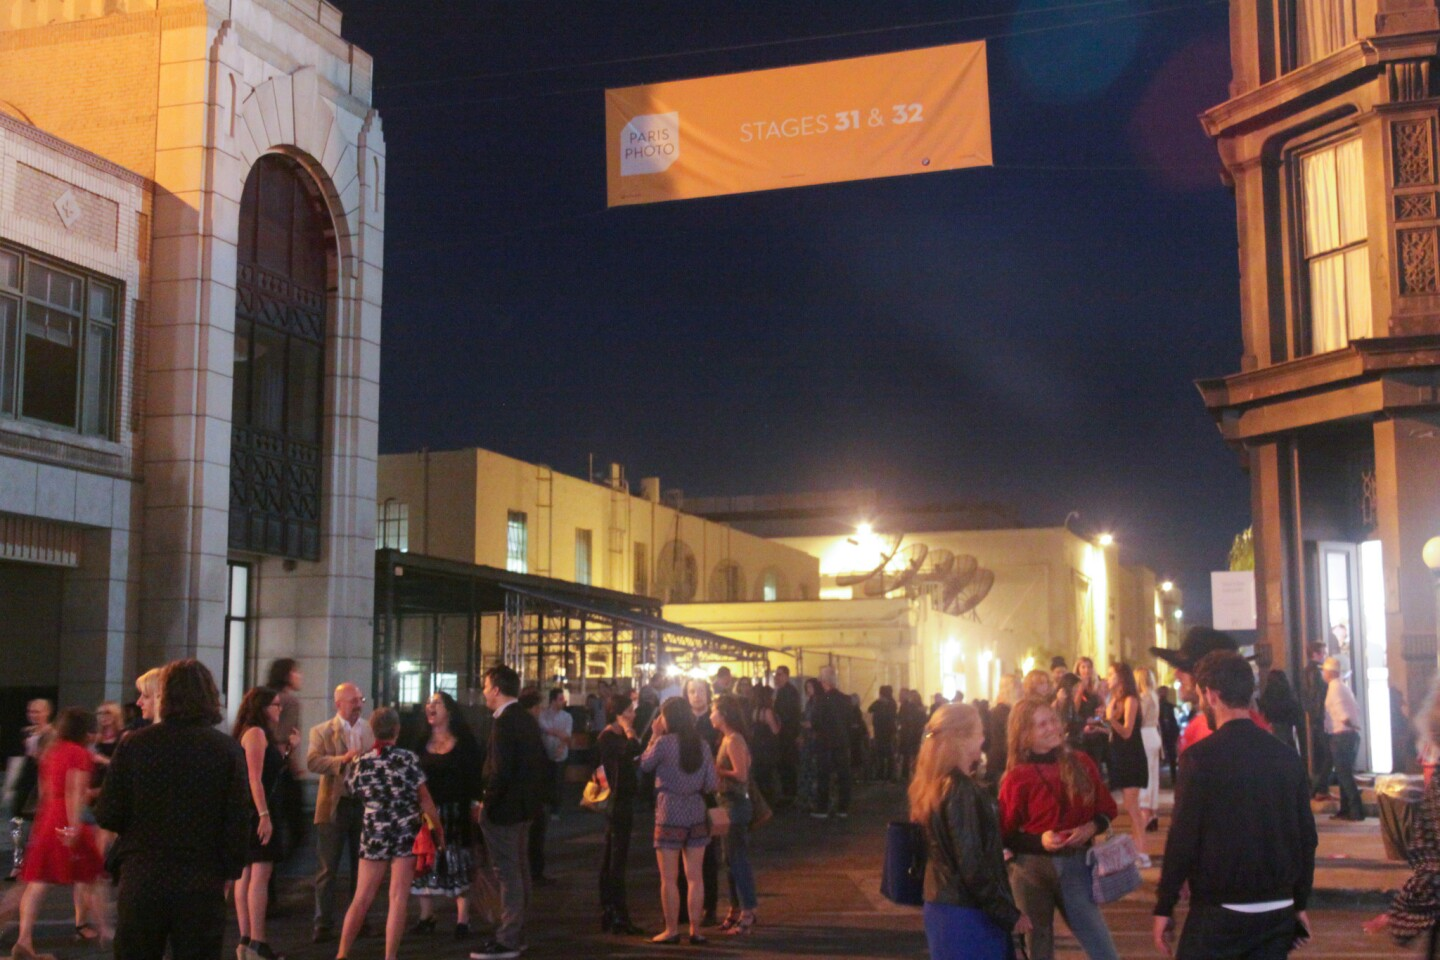 Paris Photo Los Angeles' opening night at the New York Street backlot at Paramount Pictures Studios.